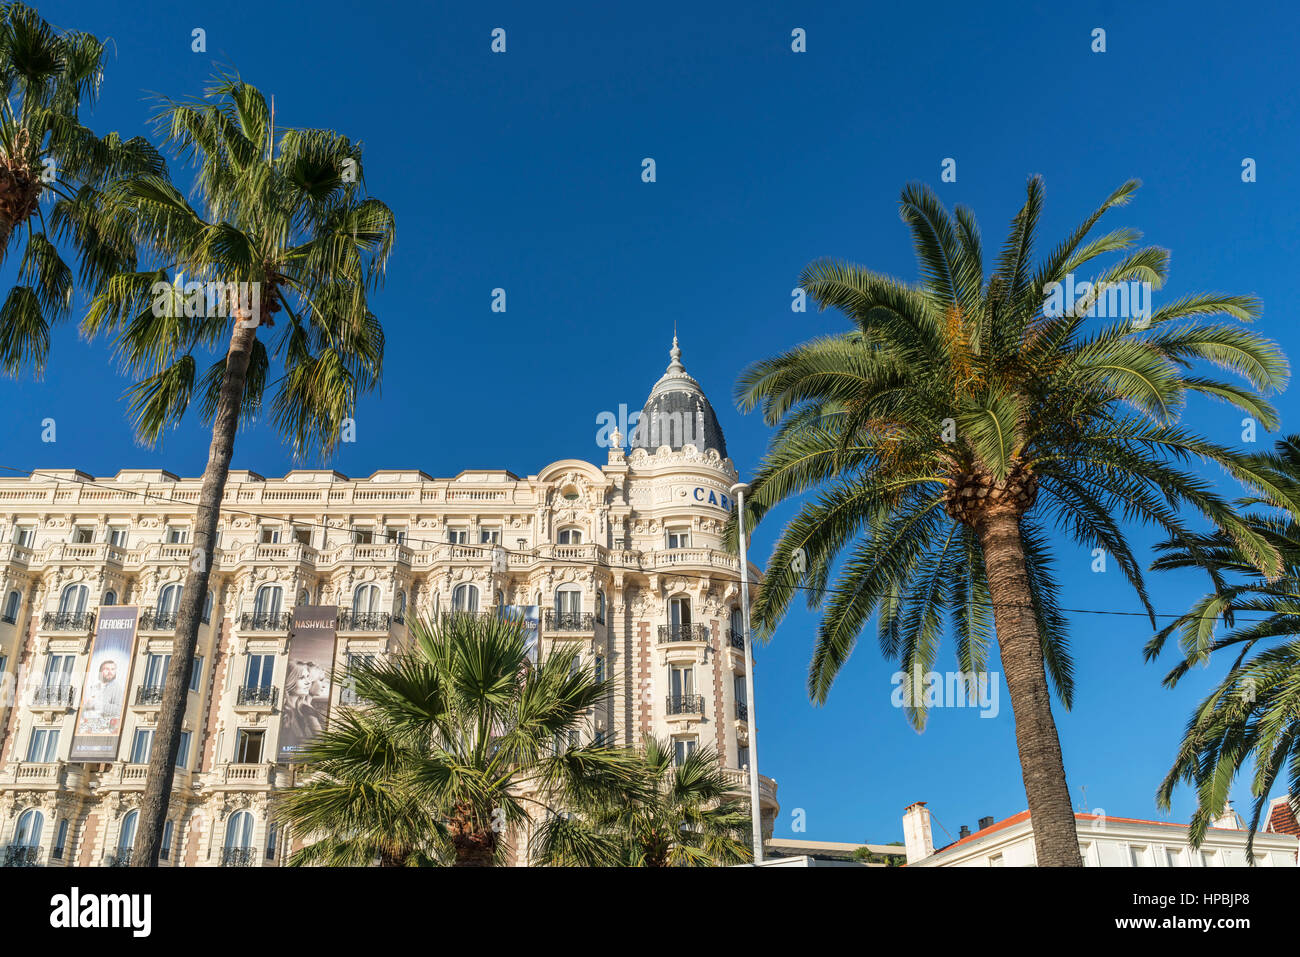 Carlton, Hotel, Facade, Promenade de Coisette,  Palm tree, Cannes, Cote d'Azur, France, Stock Photo